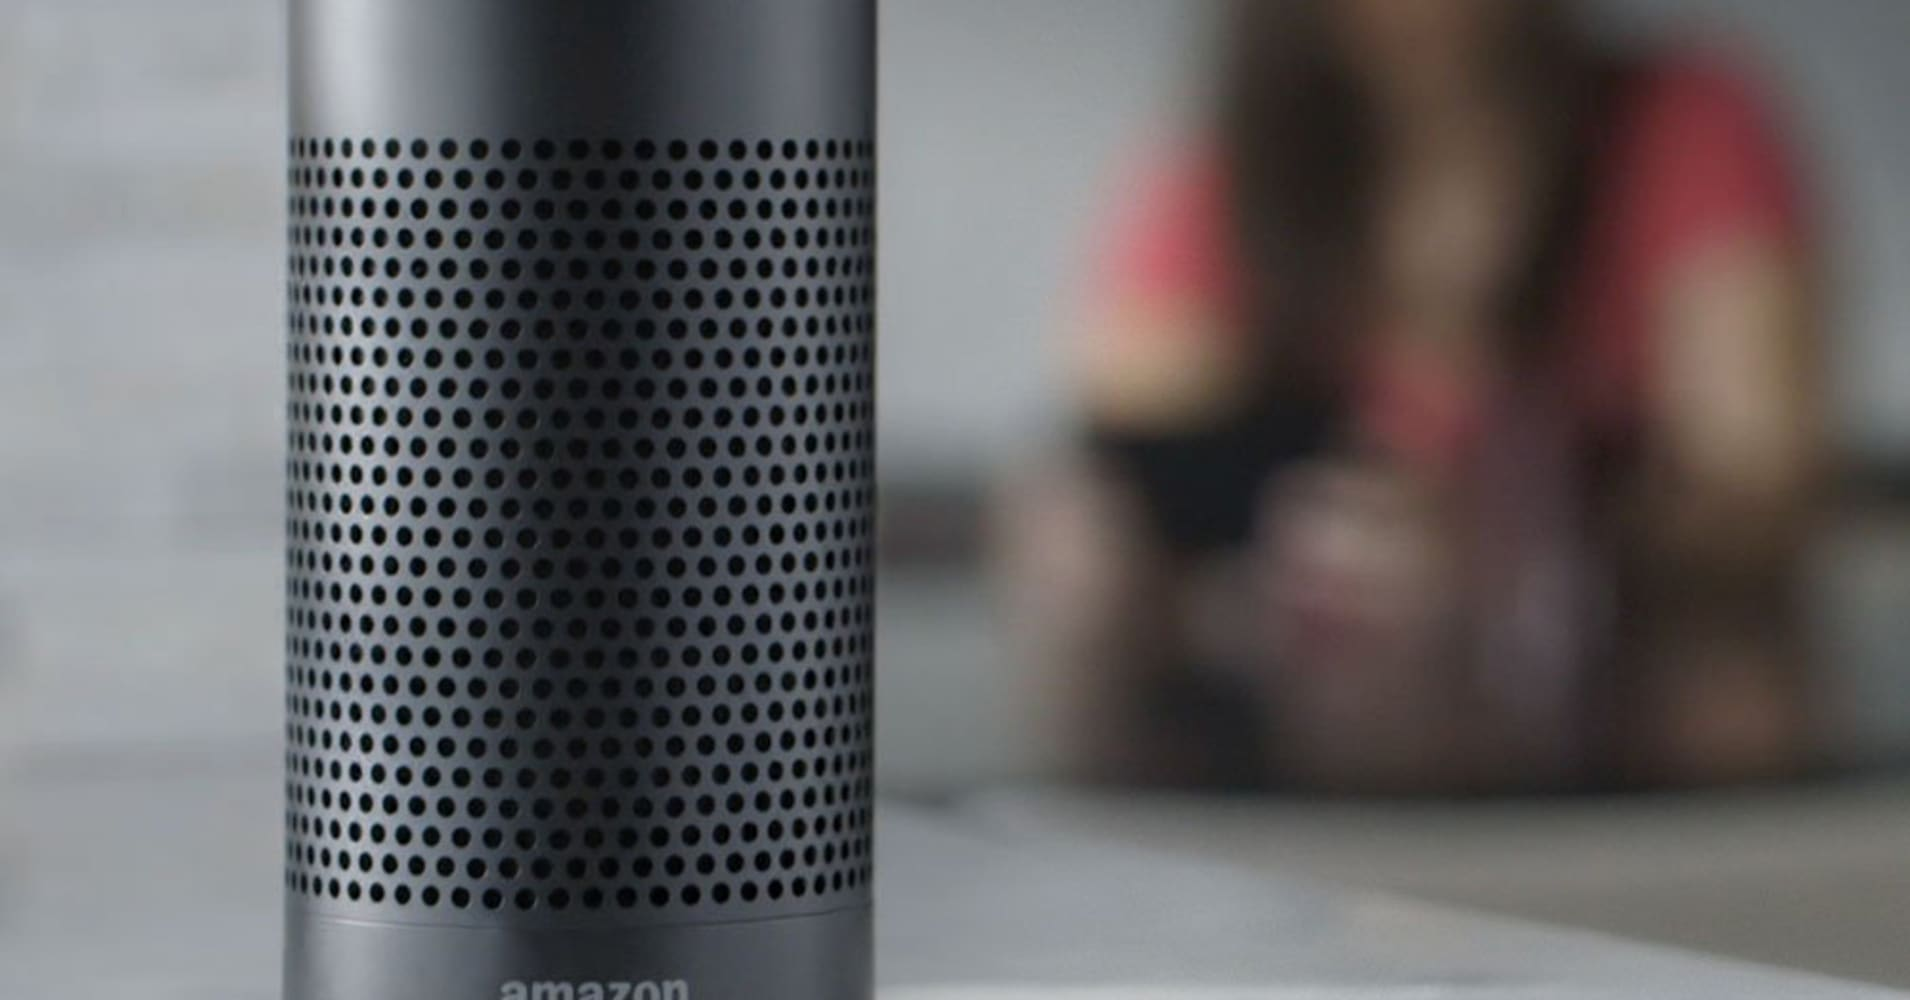 Amazon's Echo calling doesn't let you block people